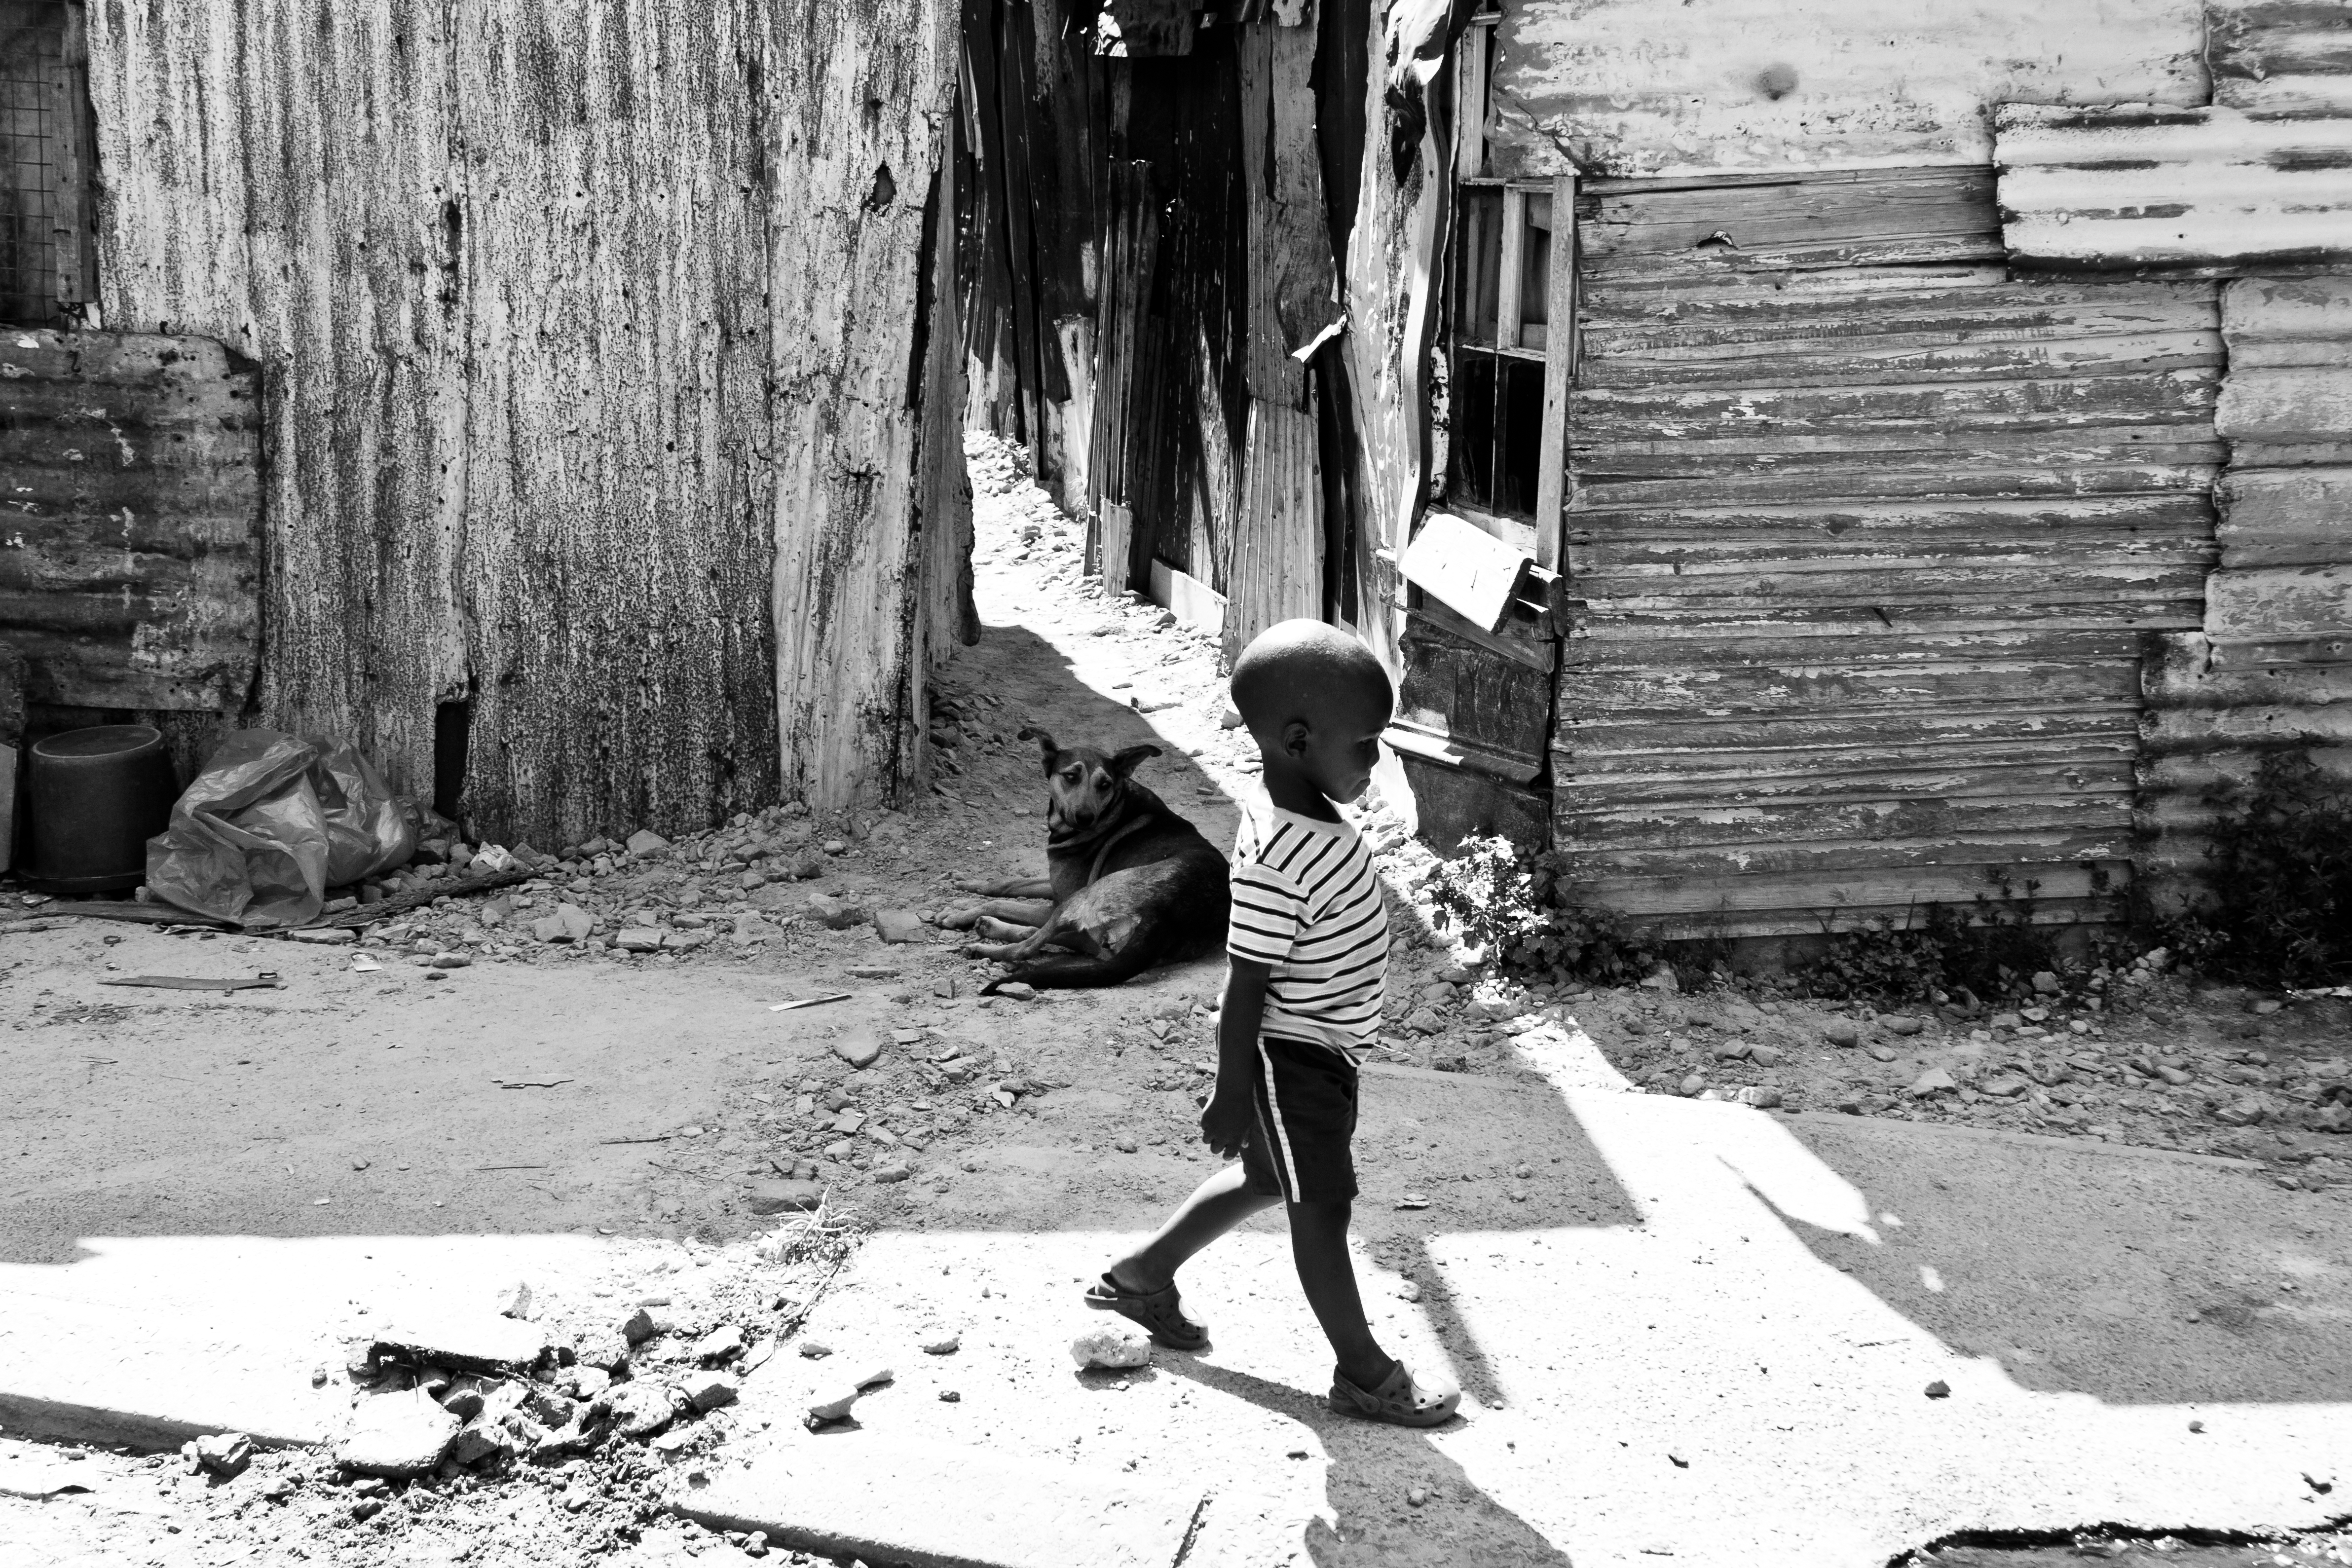 Untitled 3 : A boy walking along the dirt road through the shacks of Dunoon Township, South Africa